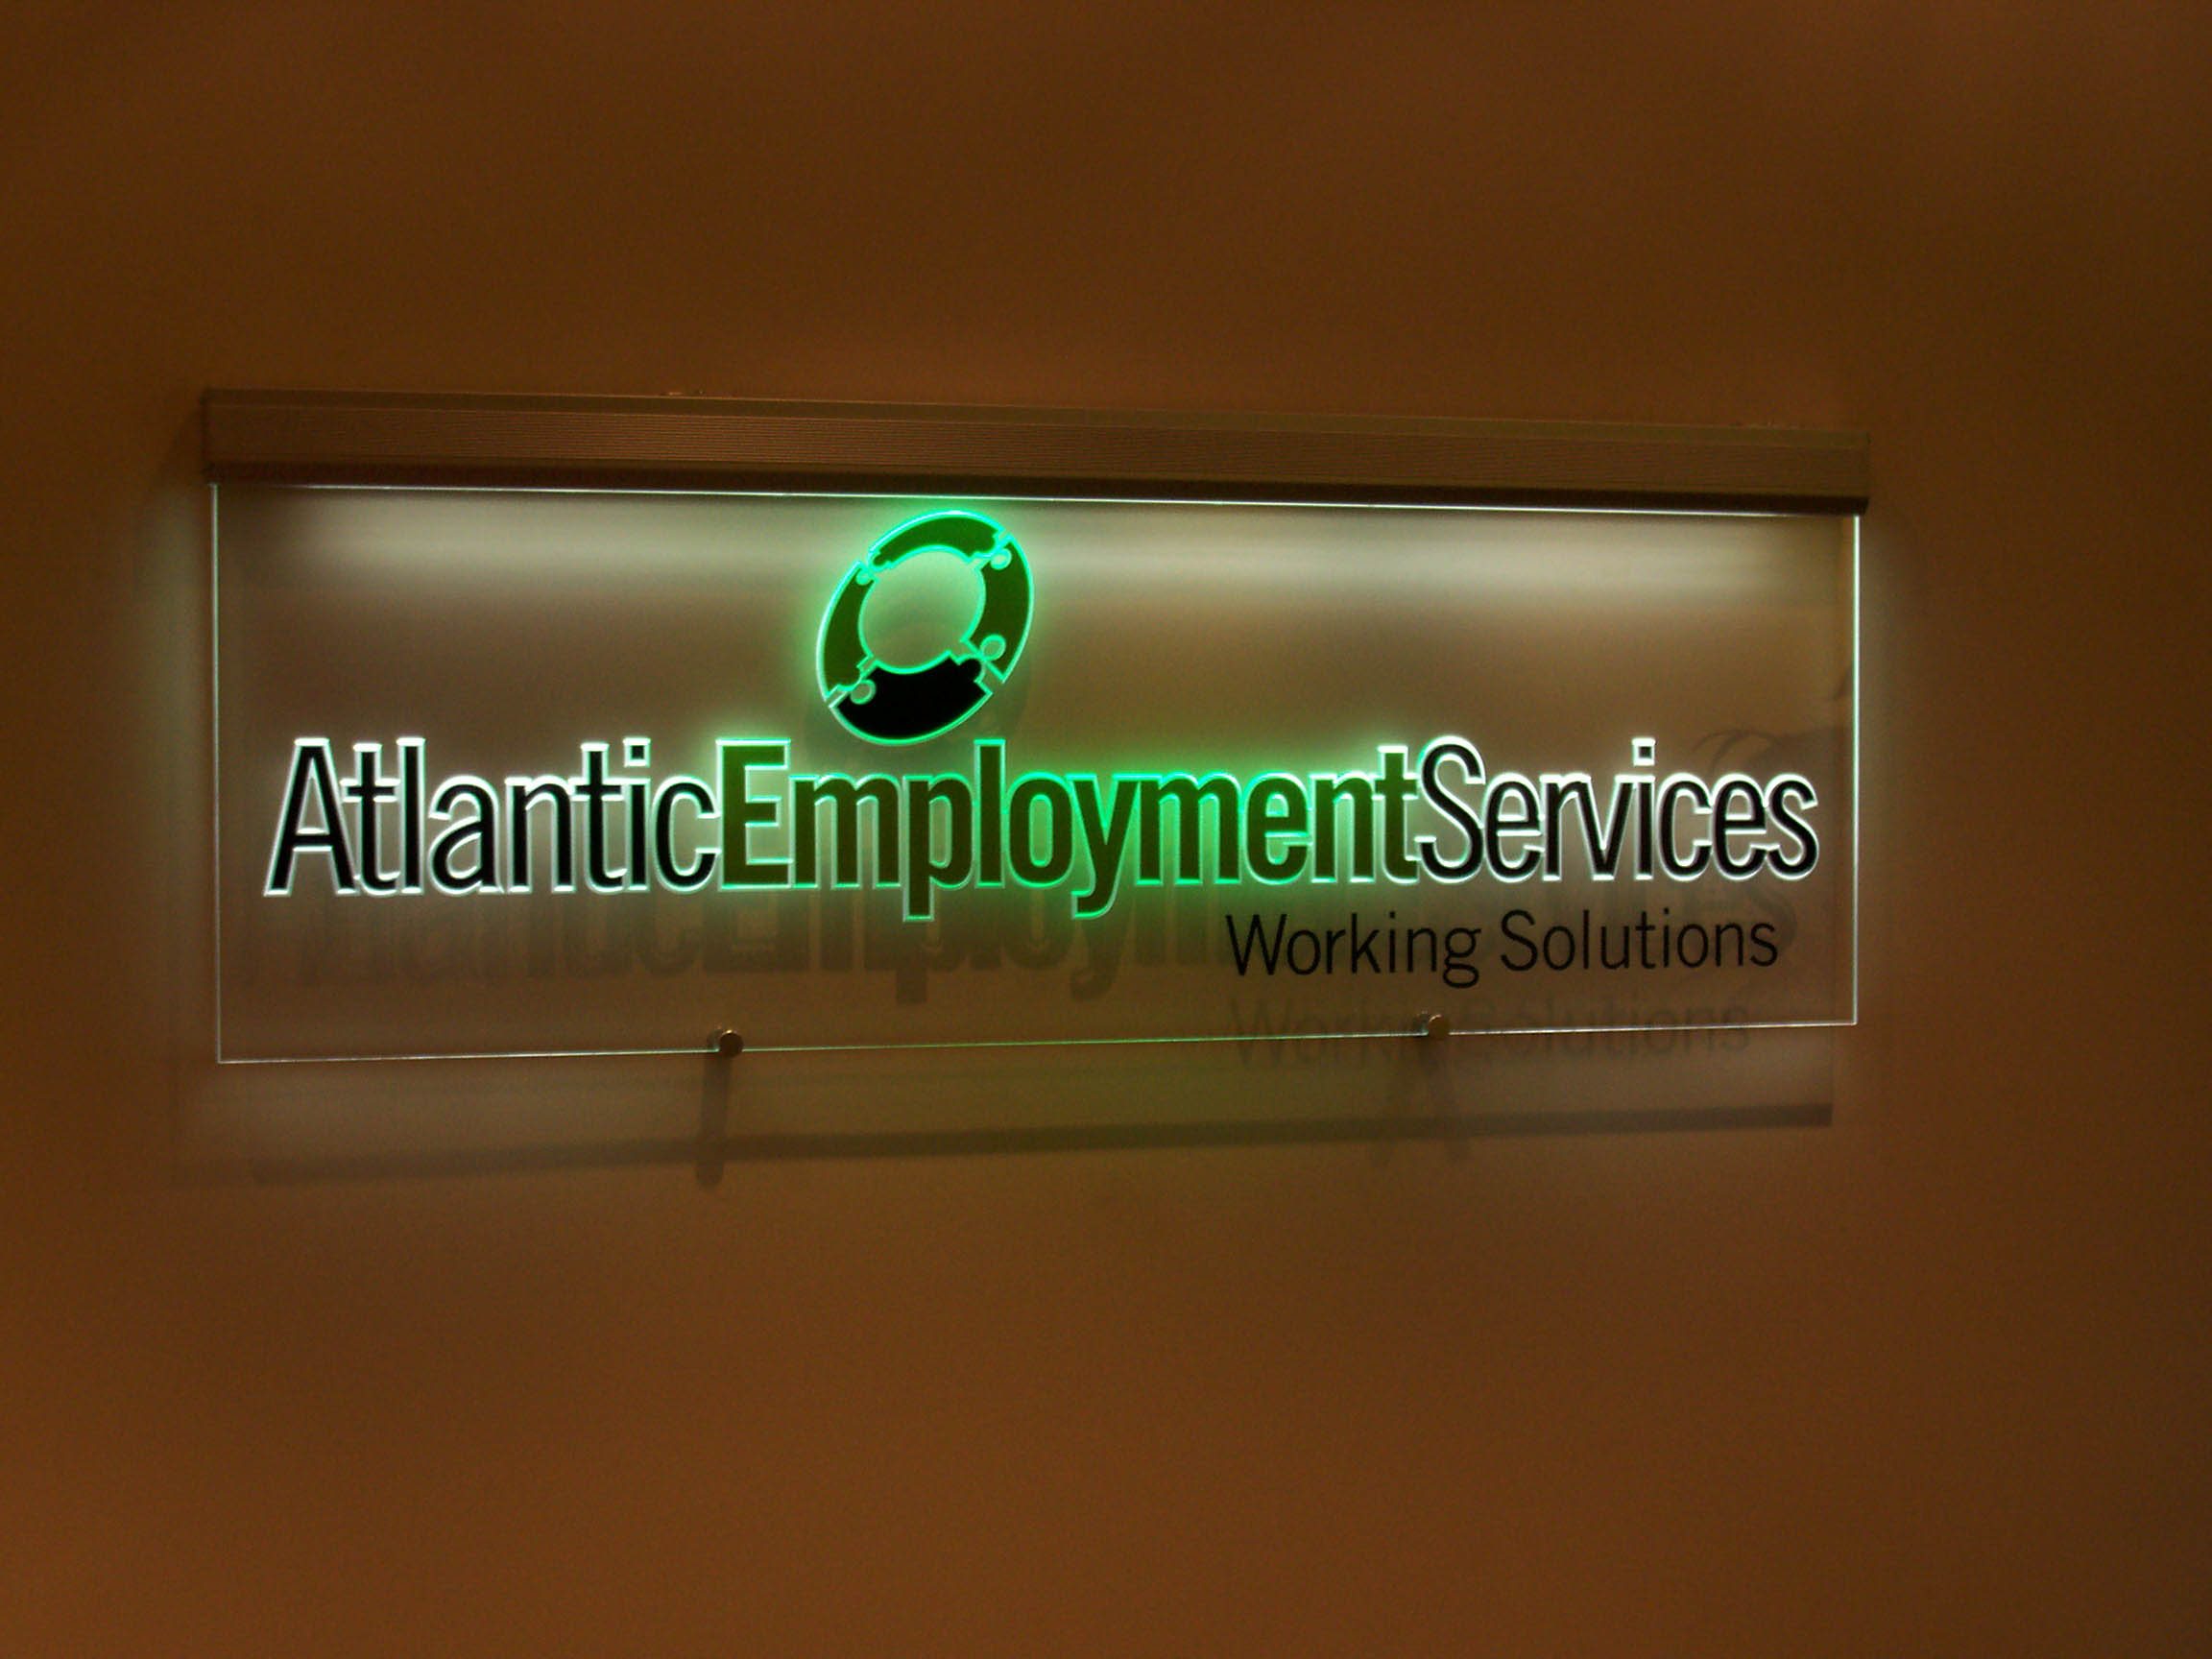 Atl Employment - Edgelit.jpg